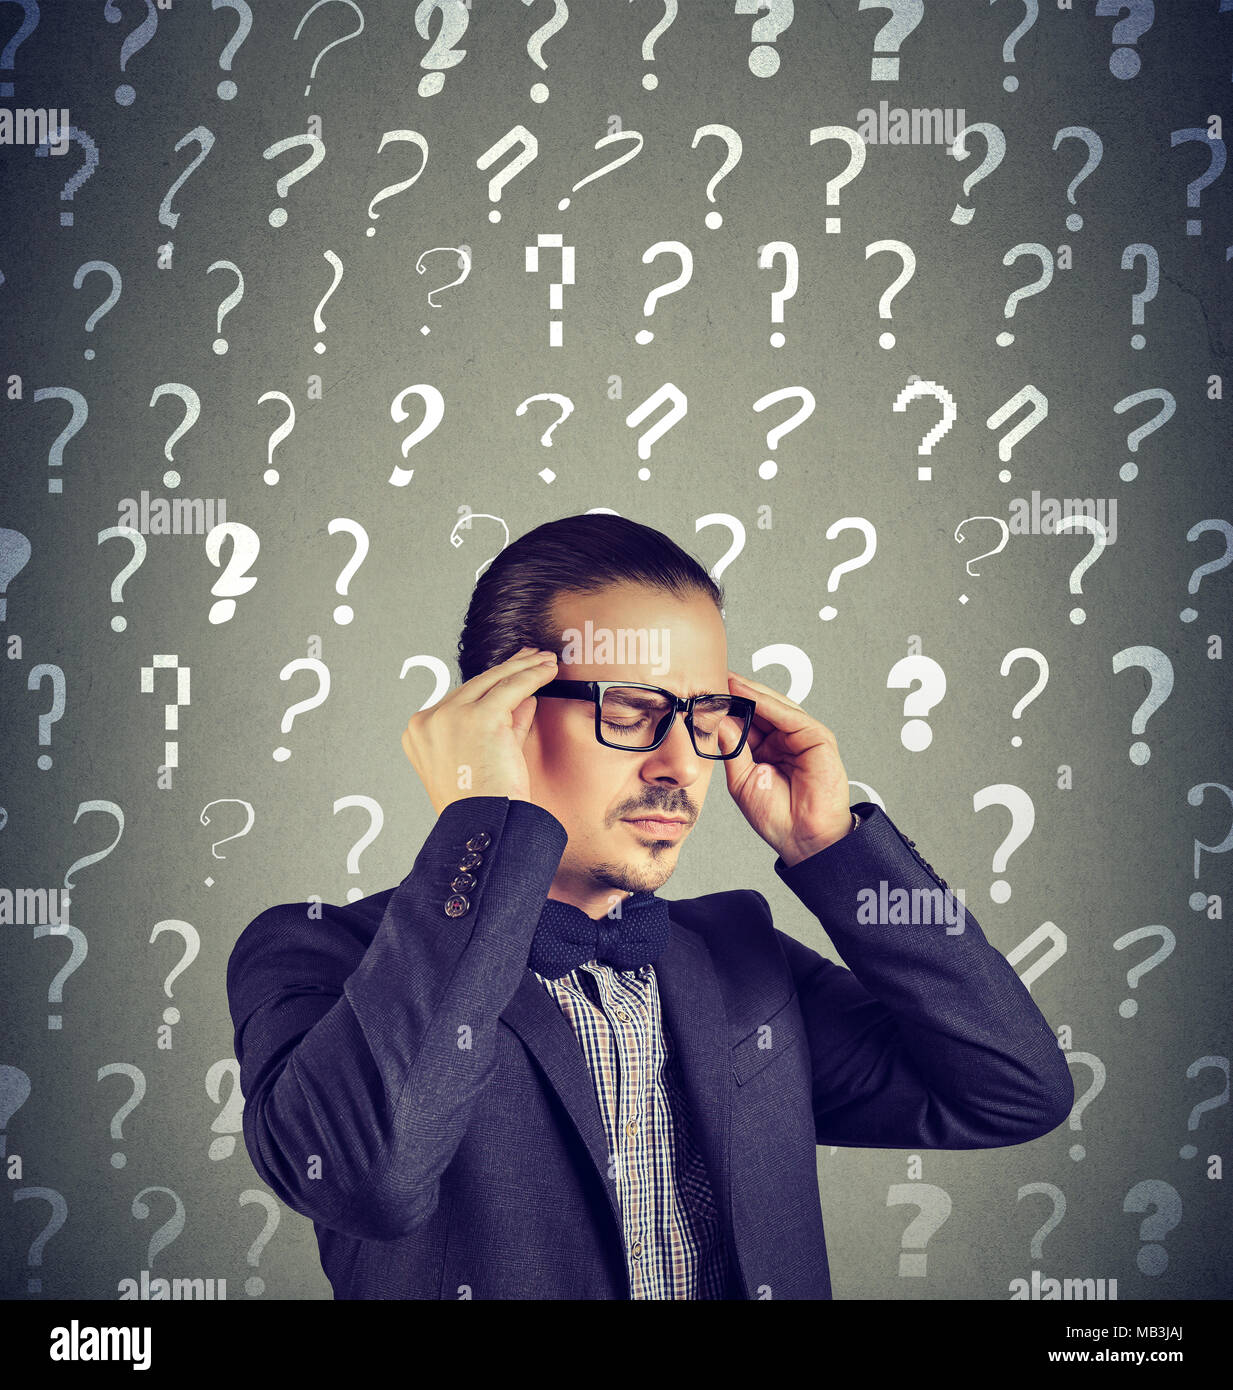 Stressed overburdened young man has too many questions and no answer - Stock Image